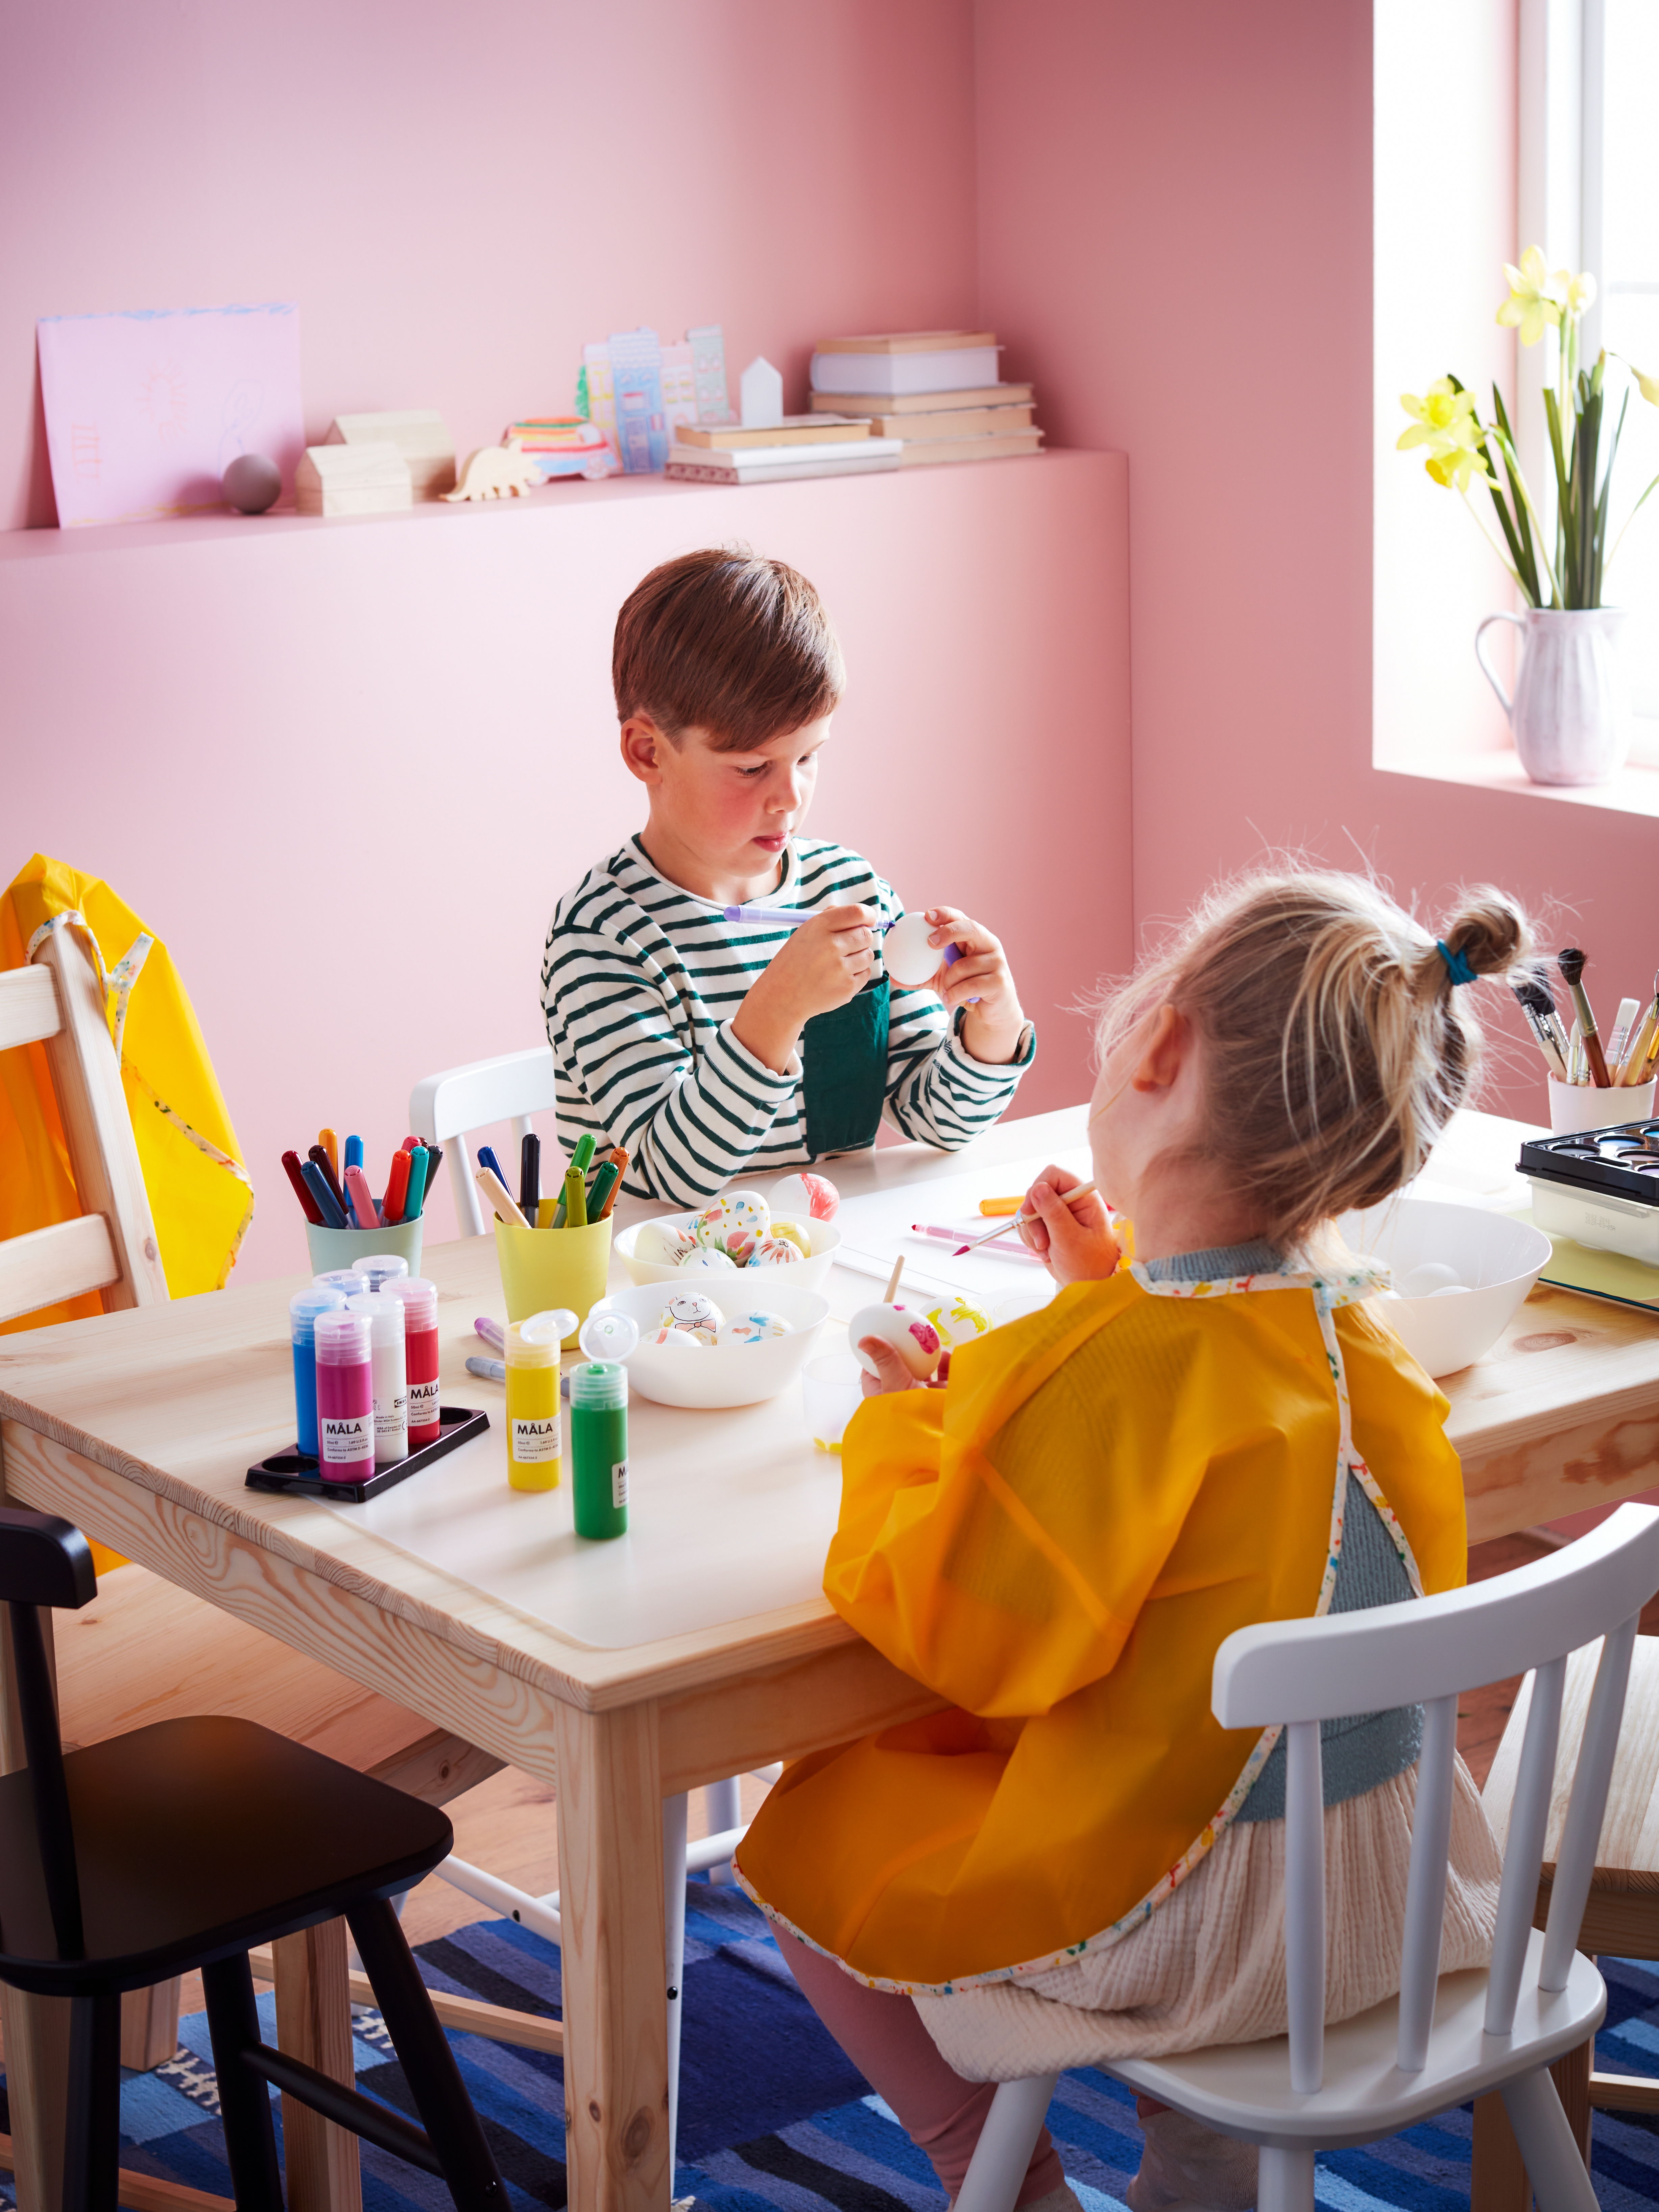 Two children sit at a low table, engrossed in colouring eggs. The table is filled with eggs and MÅLA felt-tip pens and paint.